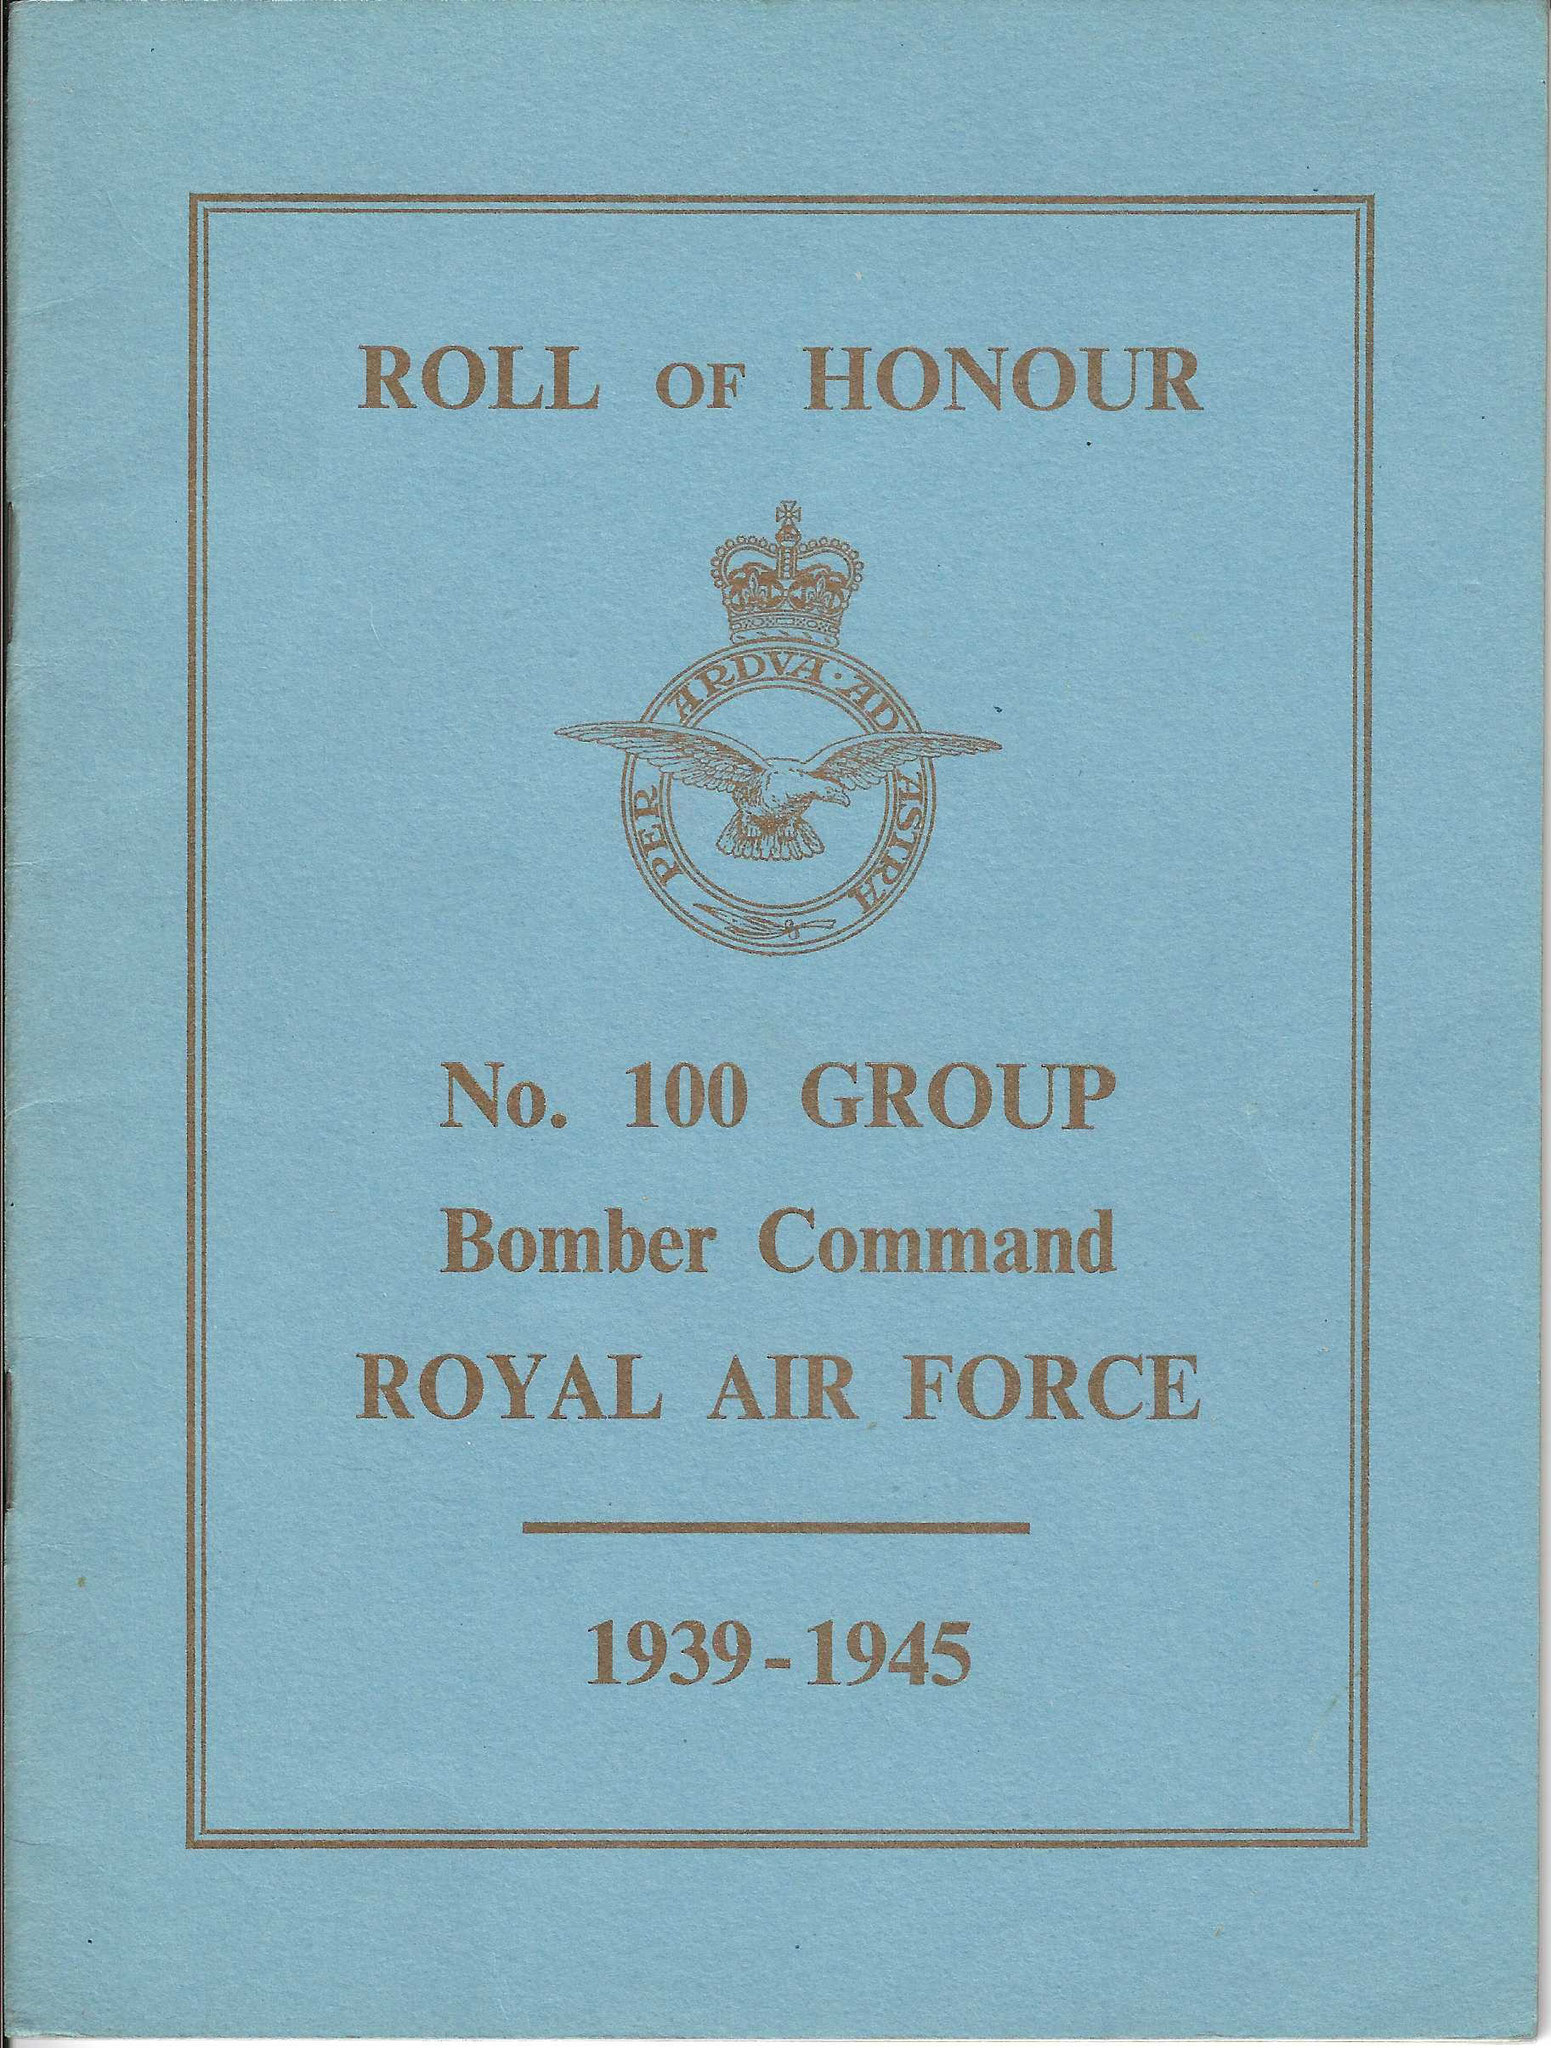 Roll of Honour, No.100 Group Bomber Command, Royal Air Force, 1955 (collection P. Reinders)